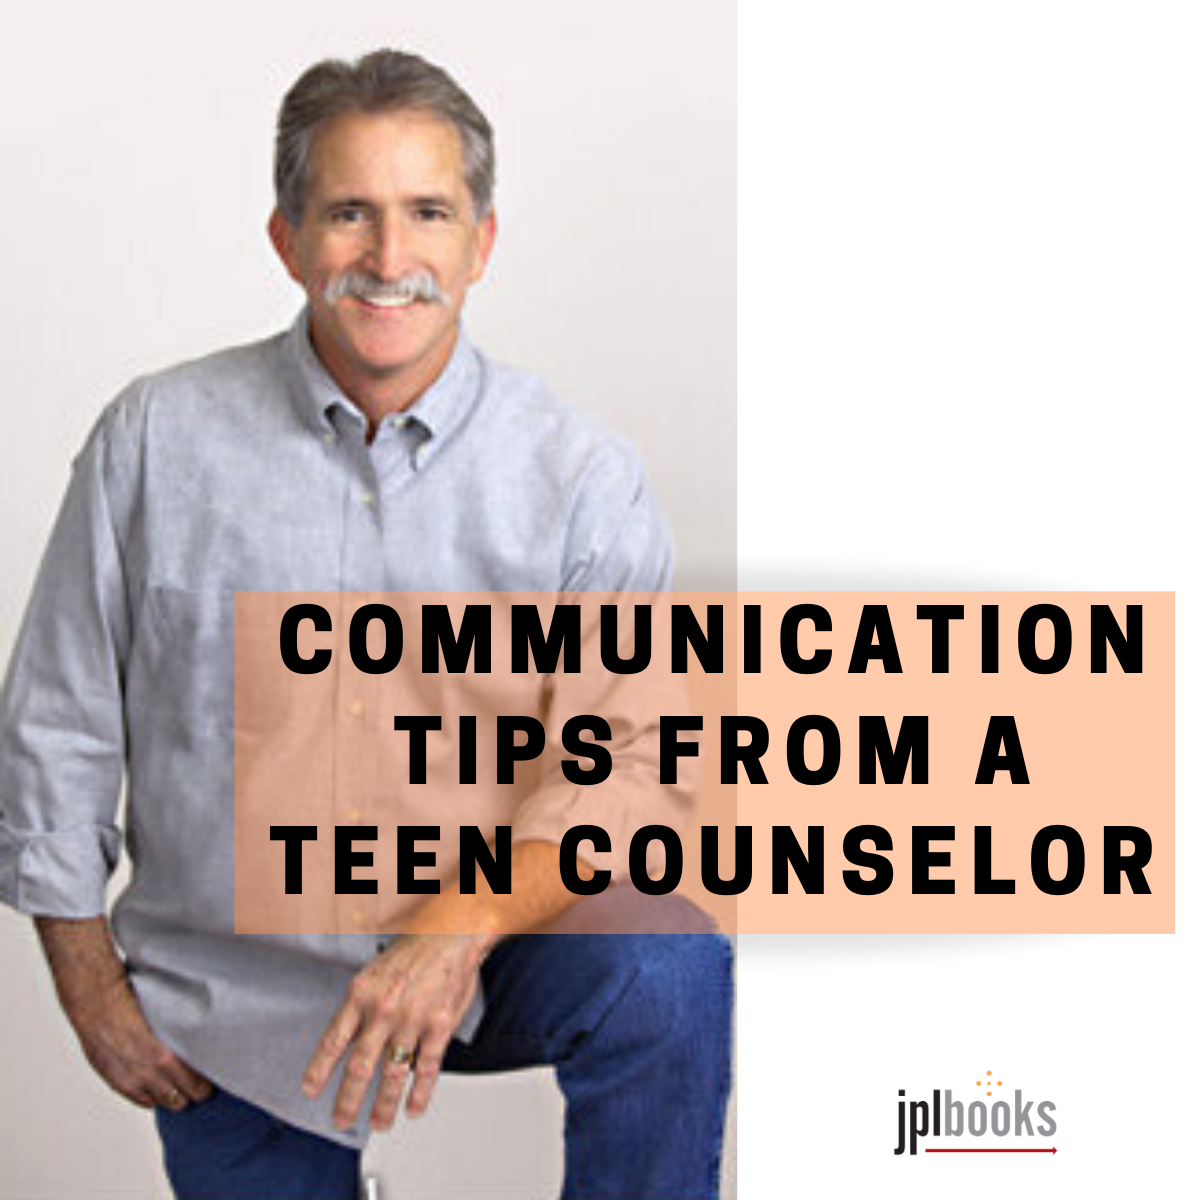 Communication Tips from a Teen Counselor